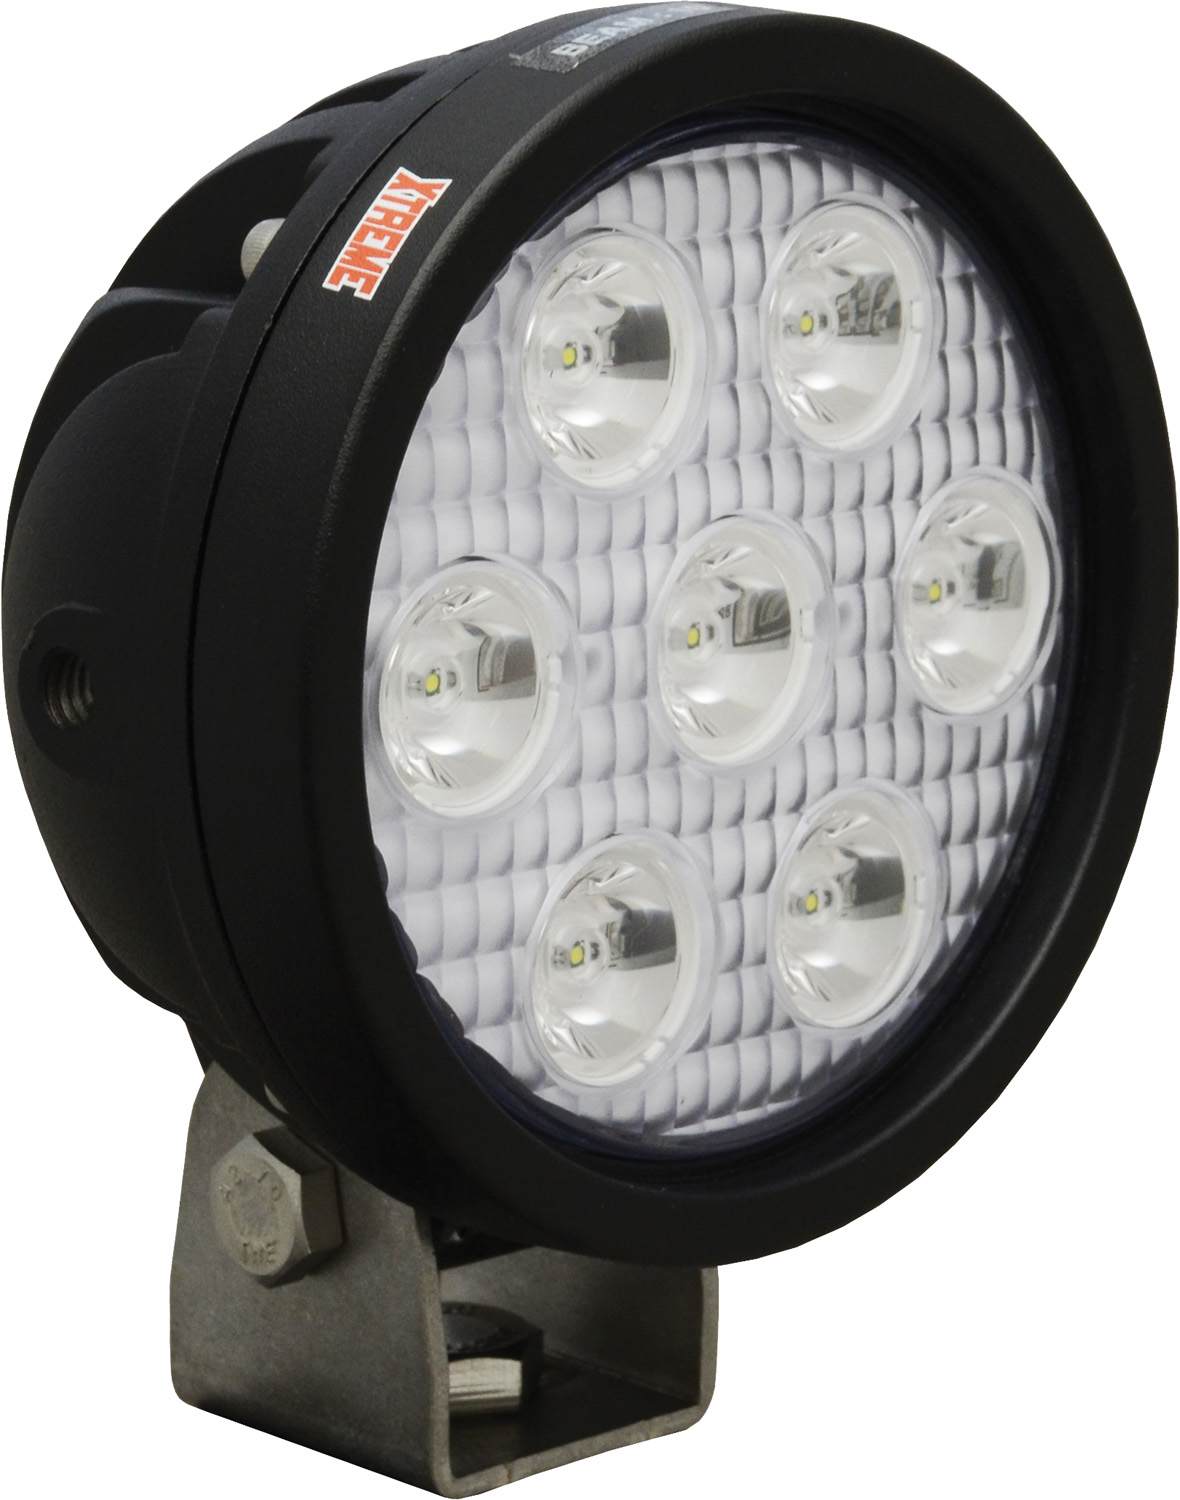 "4"" ROUND UTILITY MARKET XTREME BLACK 7 5W LED'S 10ç NARROW"